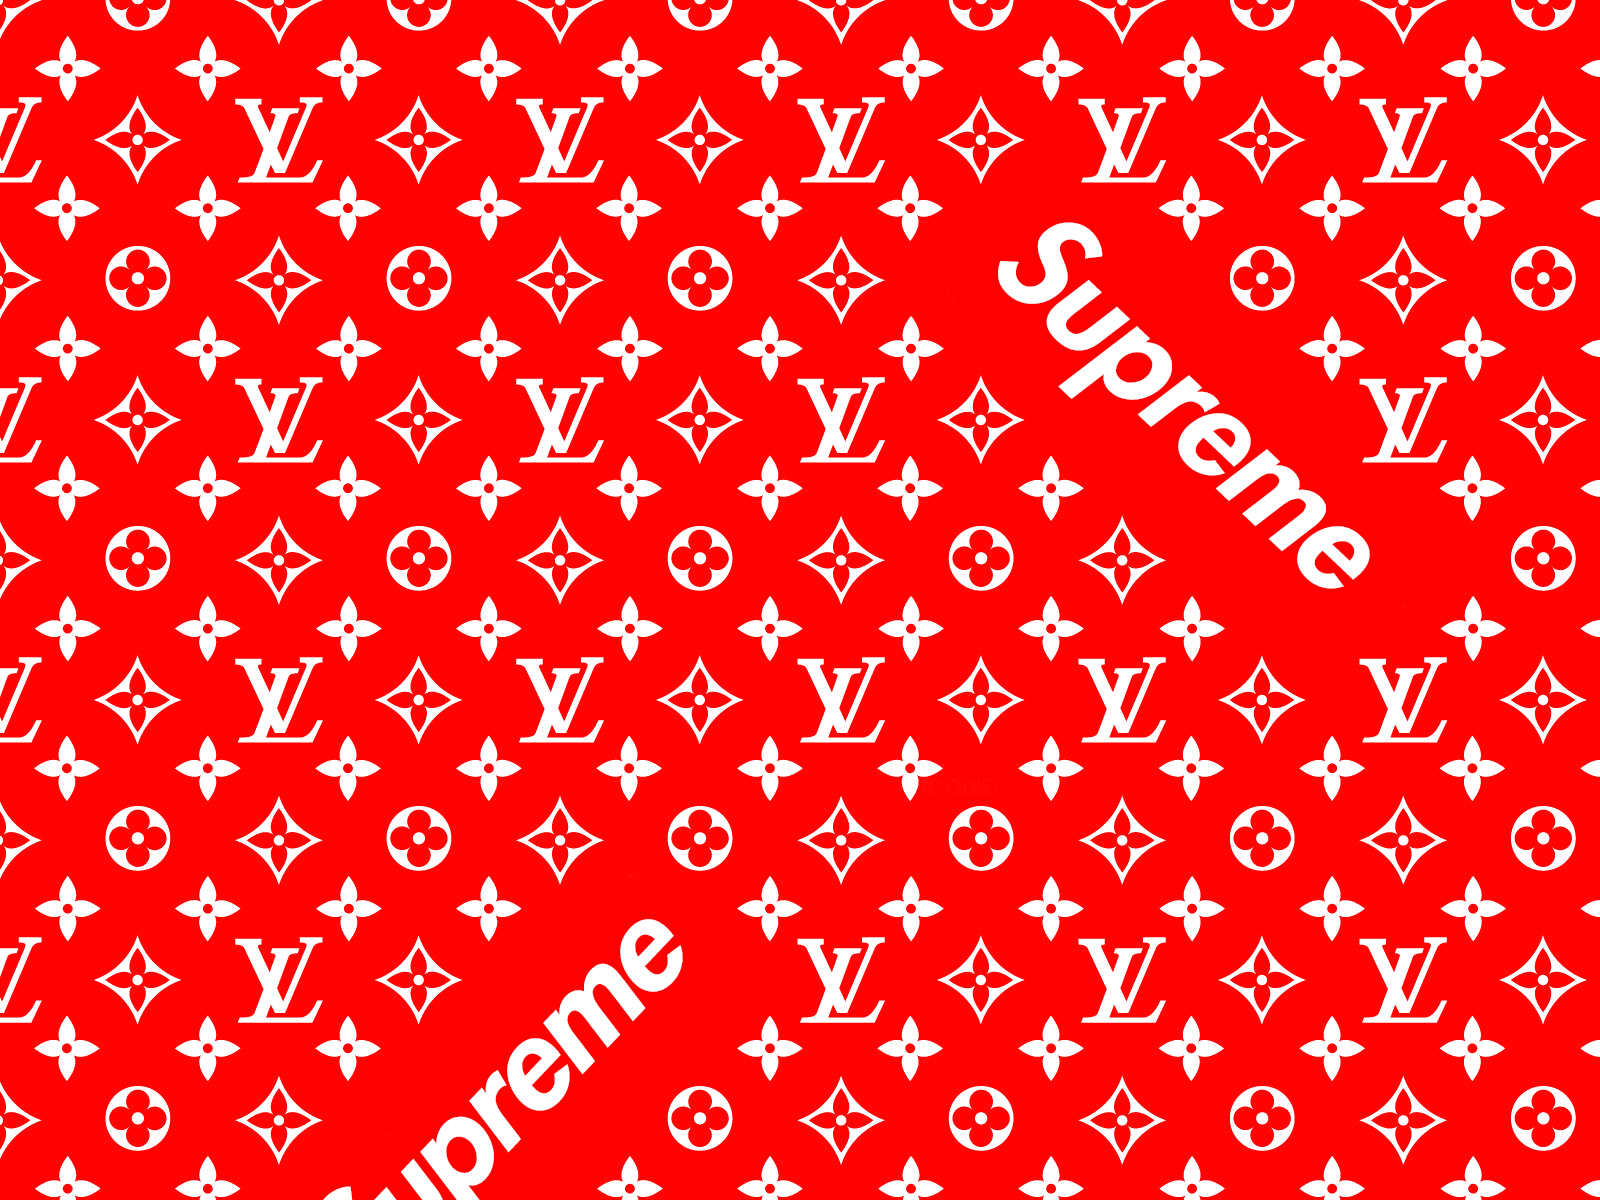 Supreme Wallpaper Background Is Cool Wallpapers in 2019